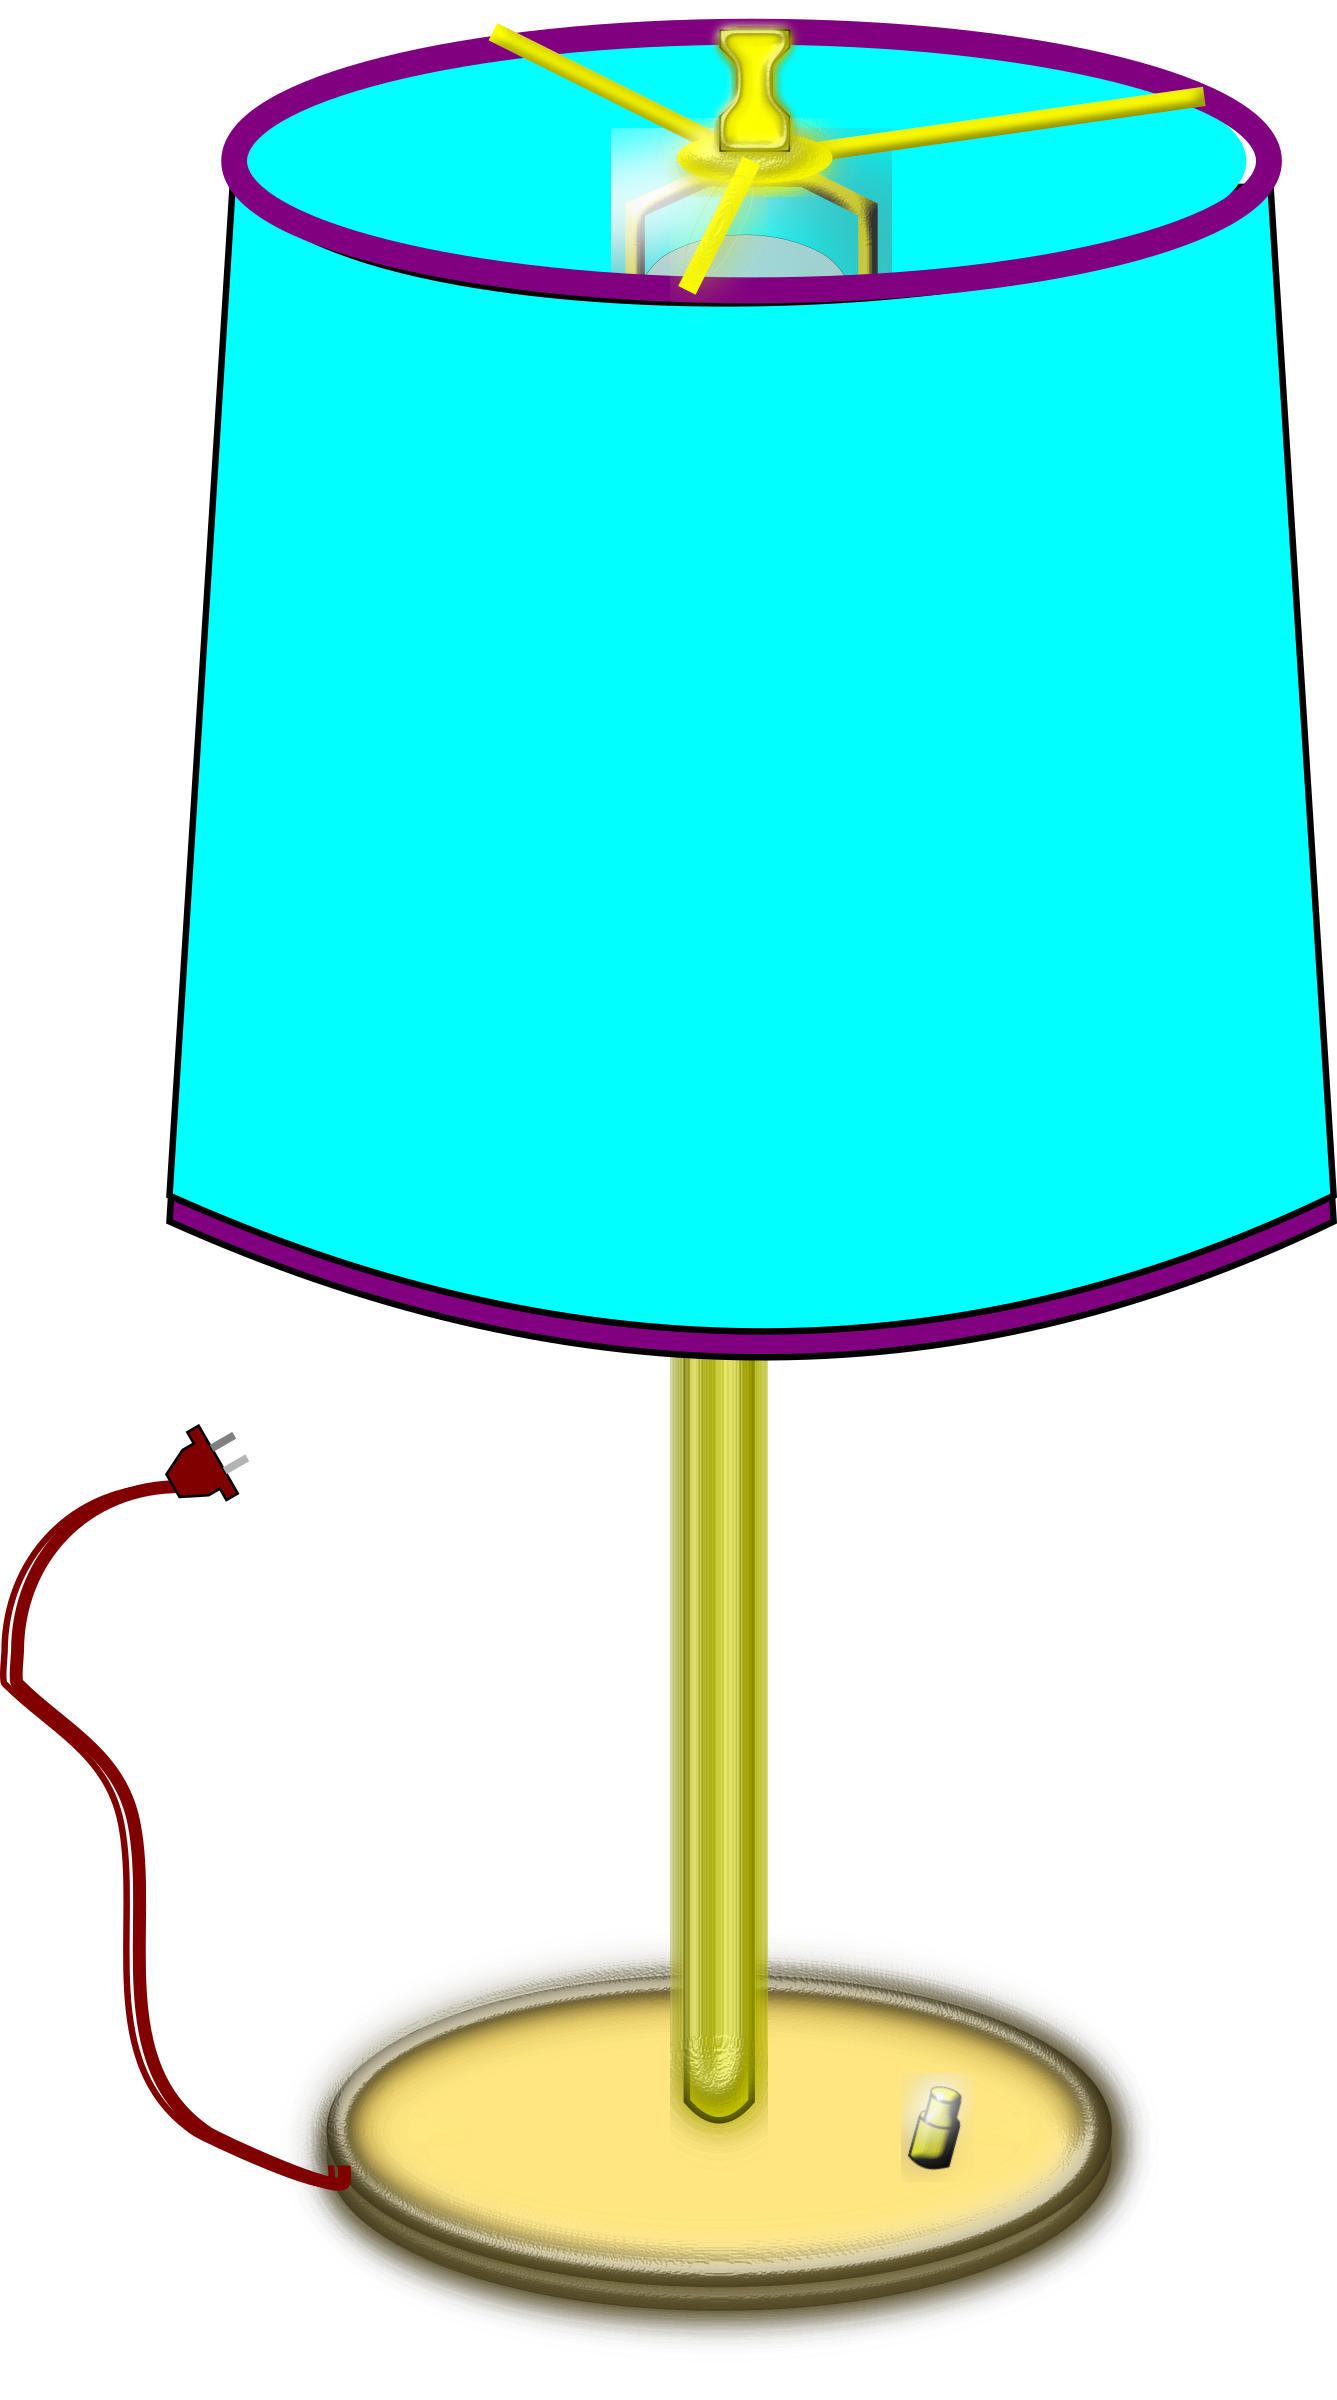 Clipart - Table Lamp for Lamp Shade Clip Art  58lpg